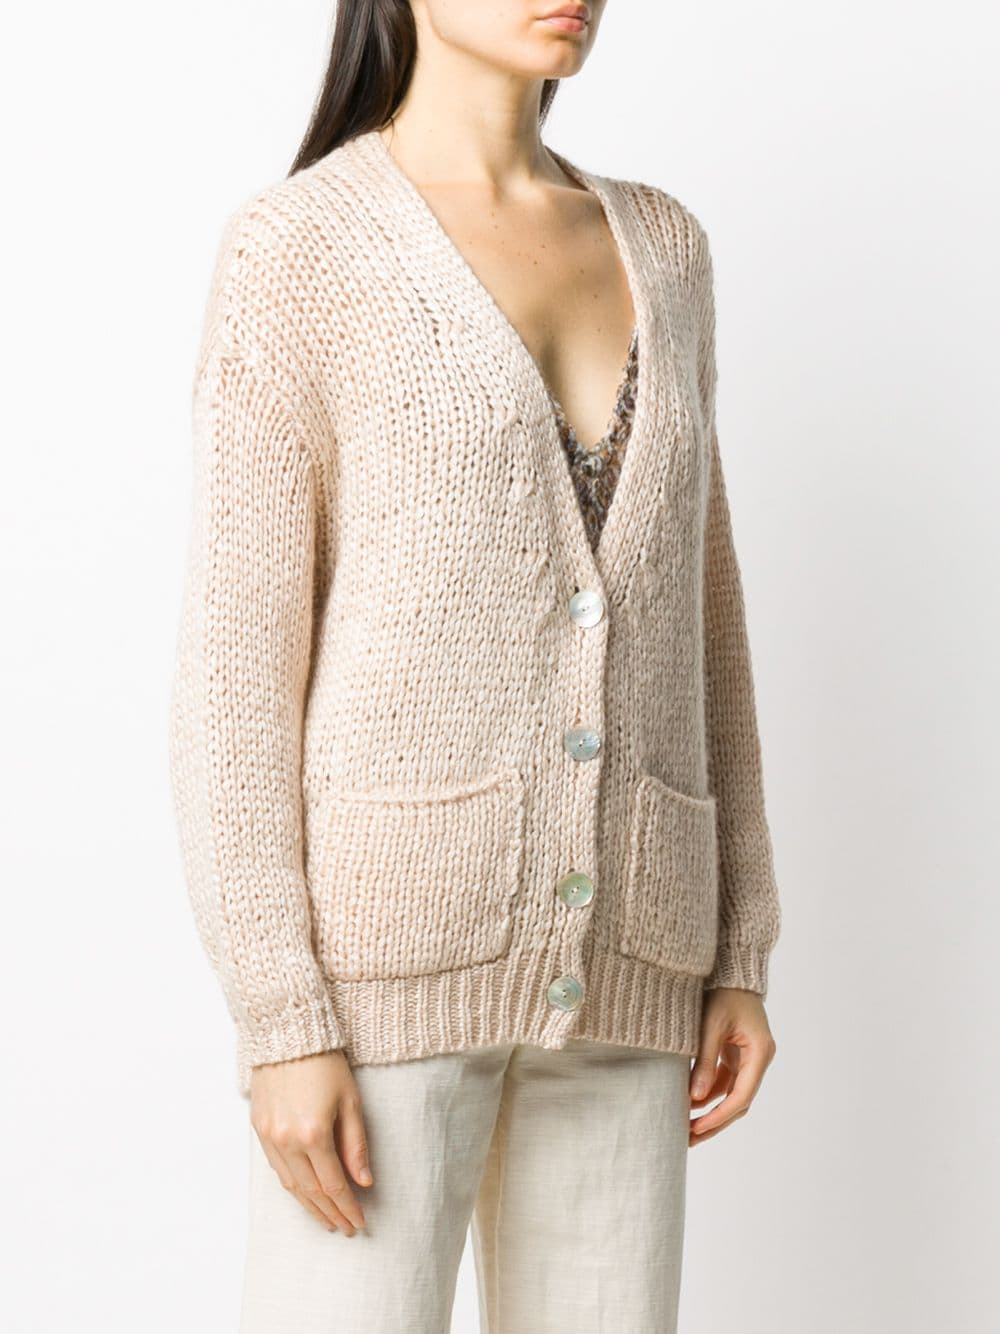 Light beige silk-mohair-cashmere blend chunky knit  cardigan FORTE_FORTE |  | 7635AVORIO